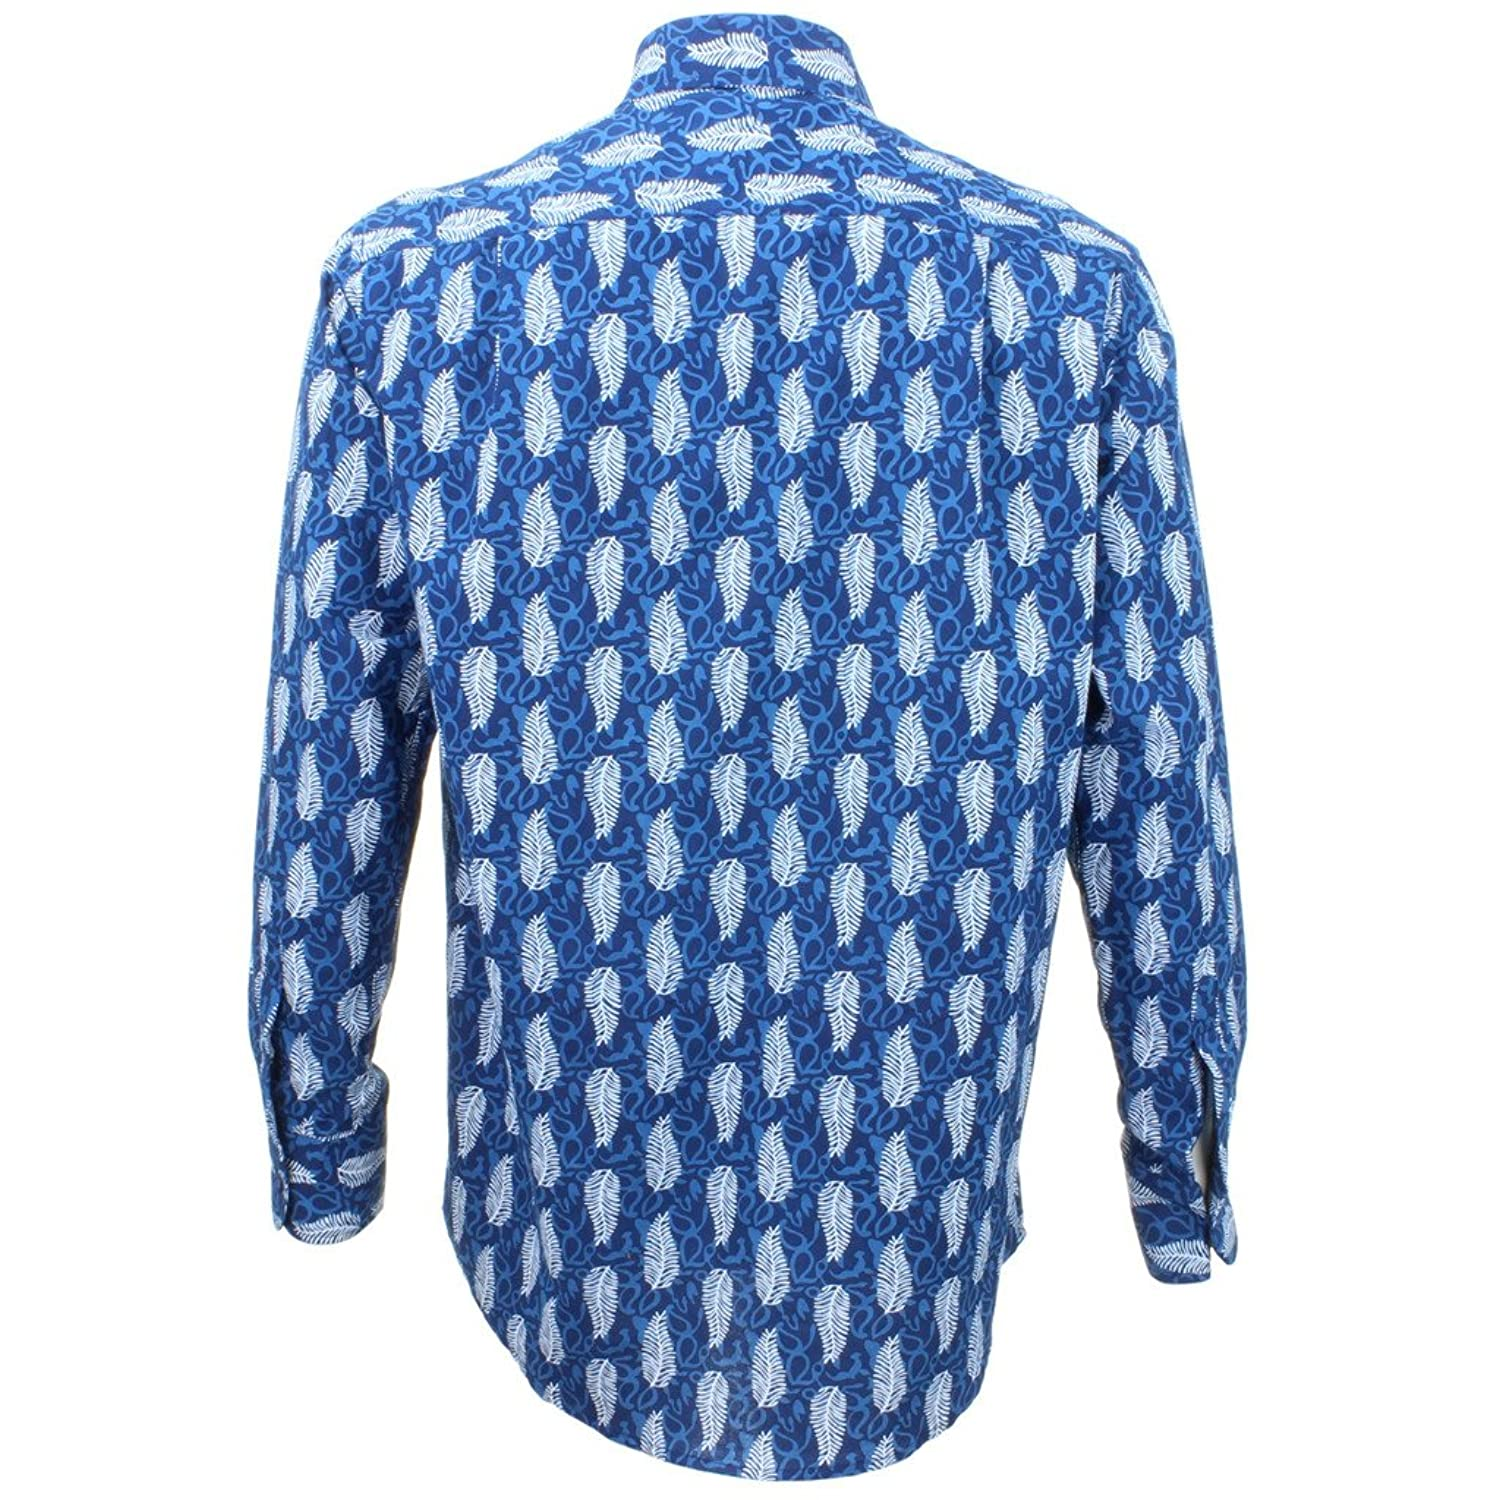 Loud Originals Regular Fit Long Sleeve Shirt - Blue with White Feathers